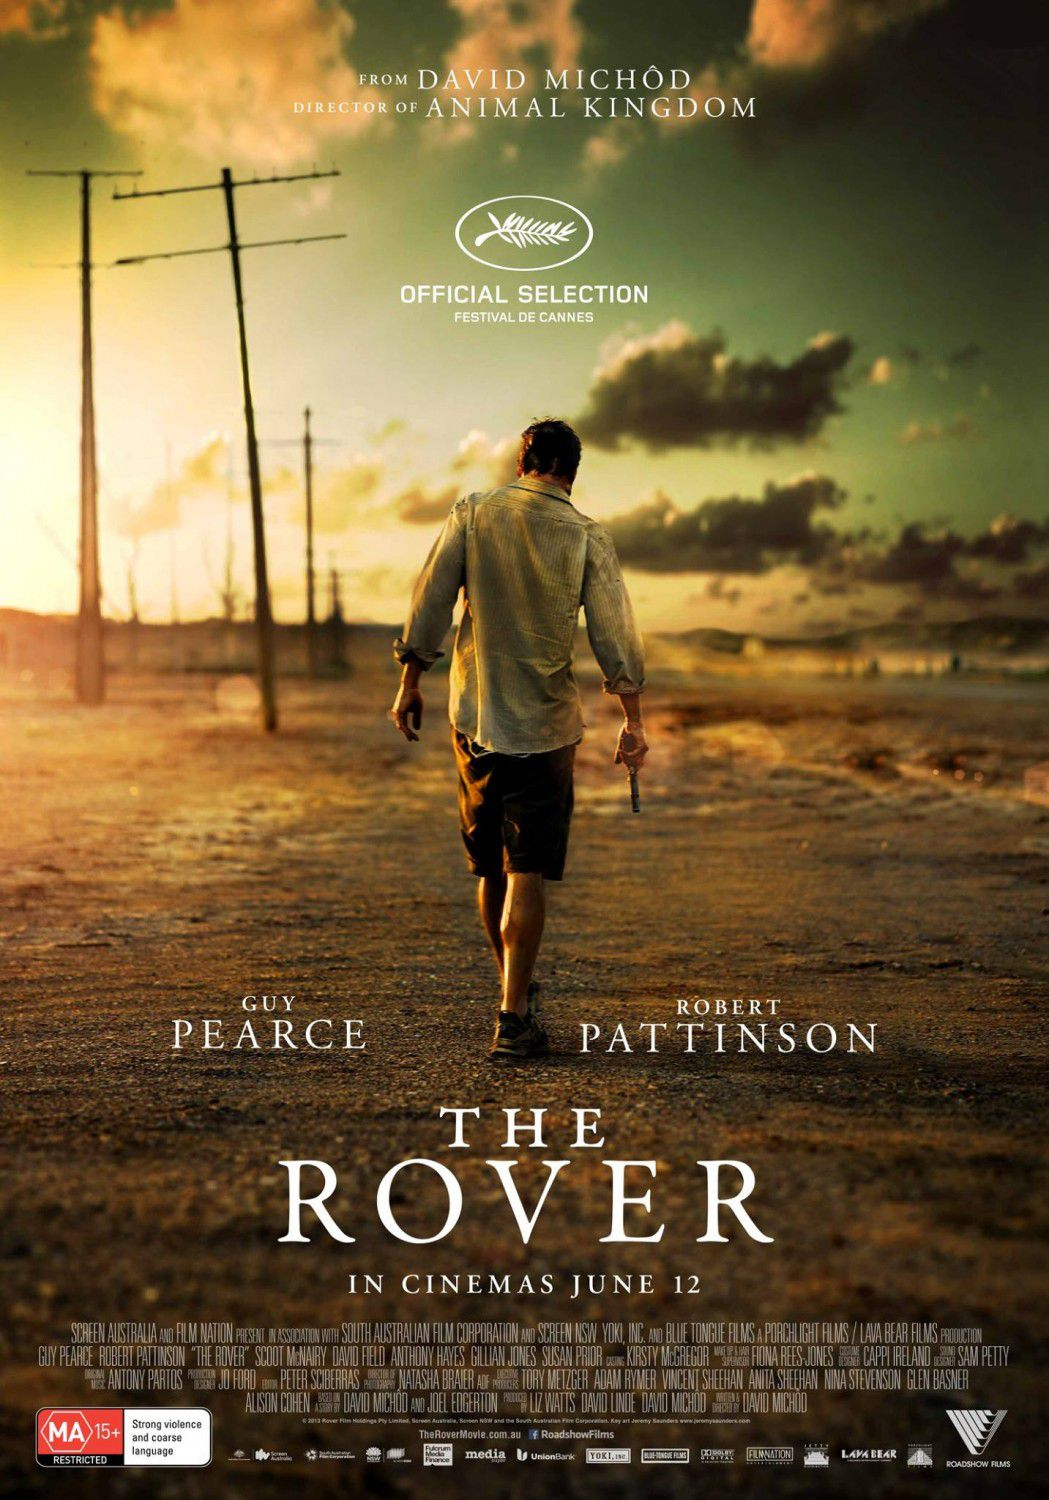 The Rover - film poster